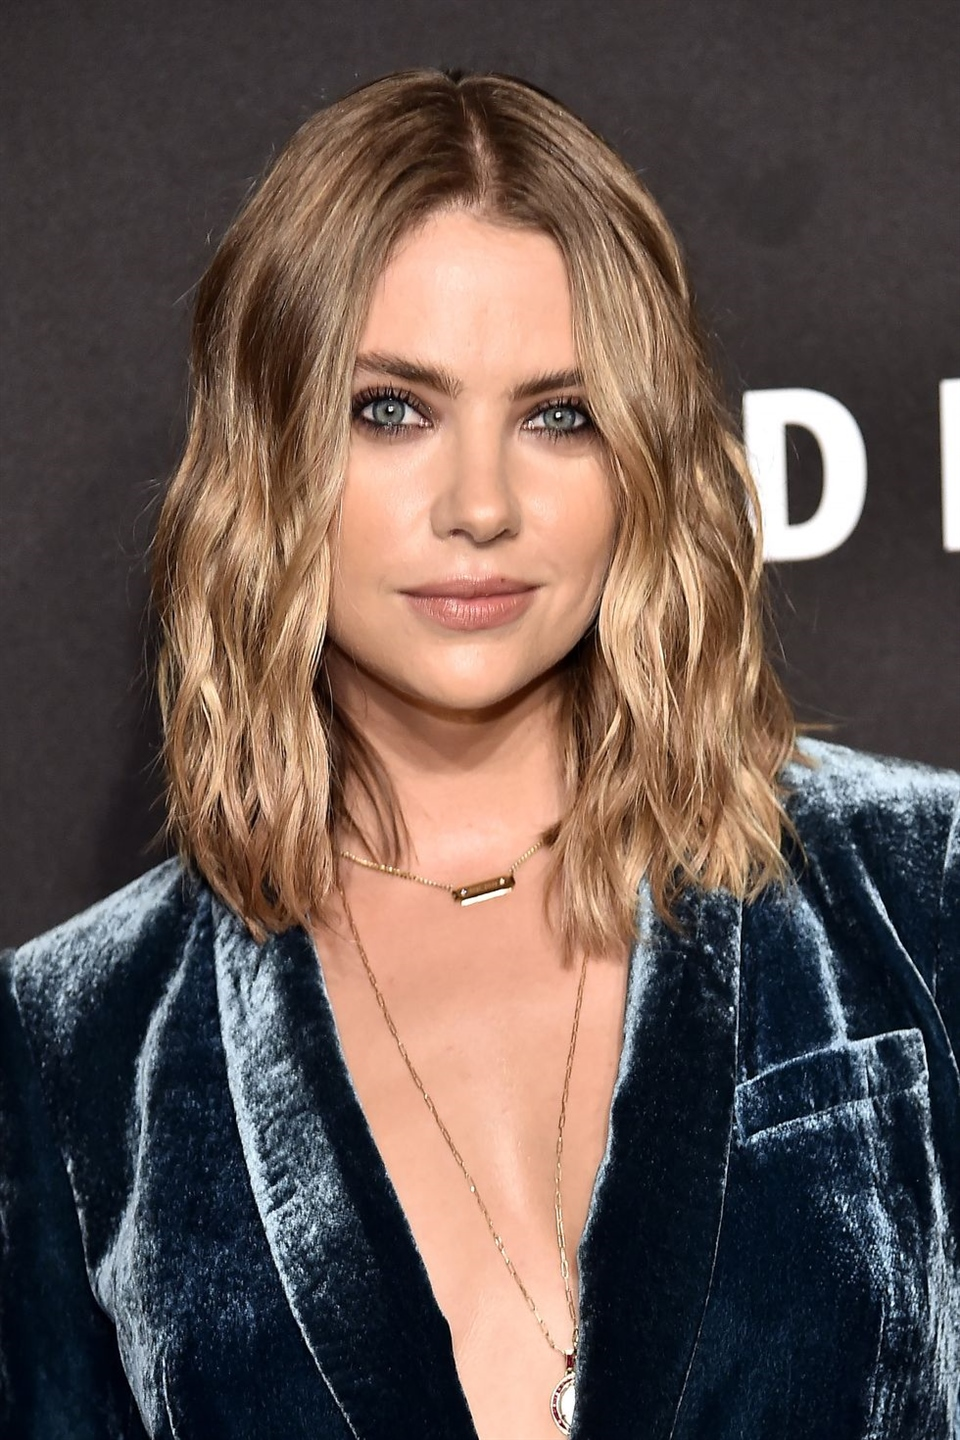 Ashley Benson Benson's been known to move on from hairstyles quick, but one thing she's kept consistent the past year is a short cut. Team MC has kept up with her ever-changing hair in 2019, but these golden mermaid waves reign supreme. Case in point: figuring out the shade that complements your skin tone the most should be a priority.